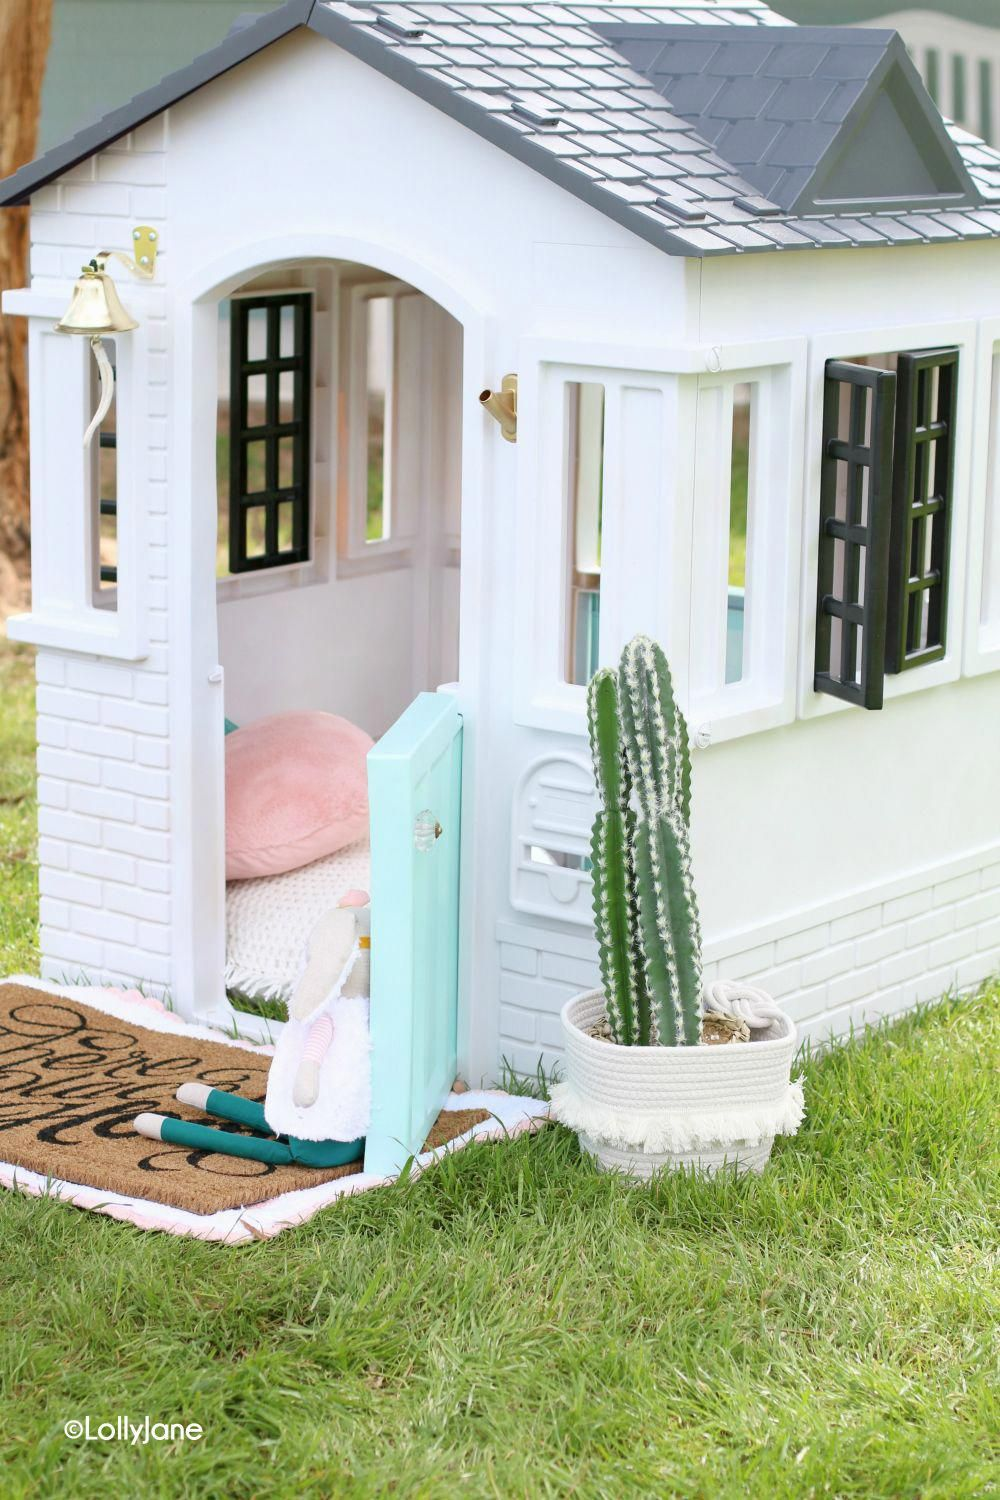 How To Paint a Plastic Playhouse Lolly Jane (With images